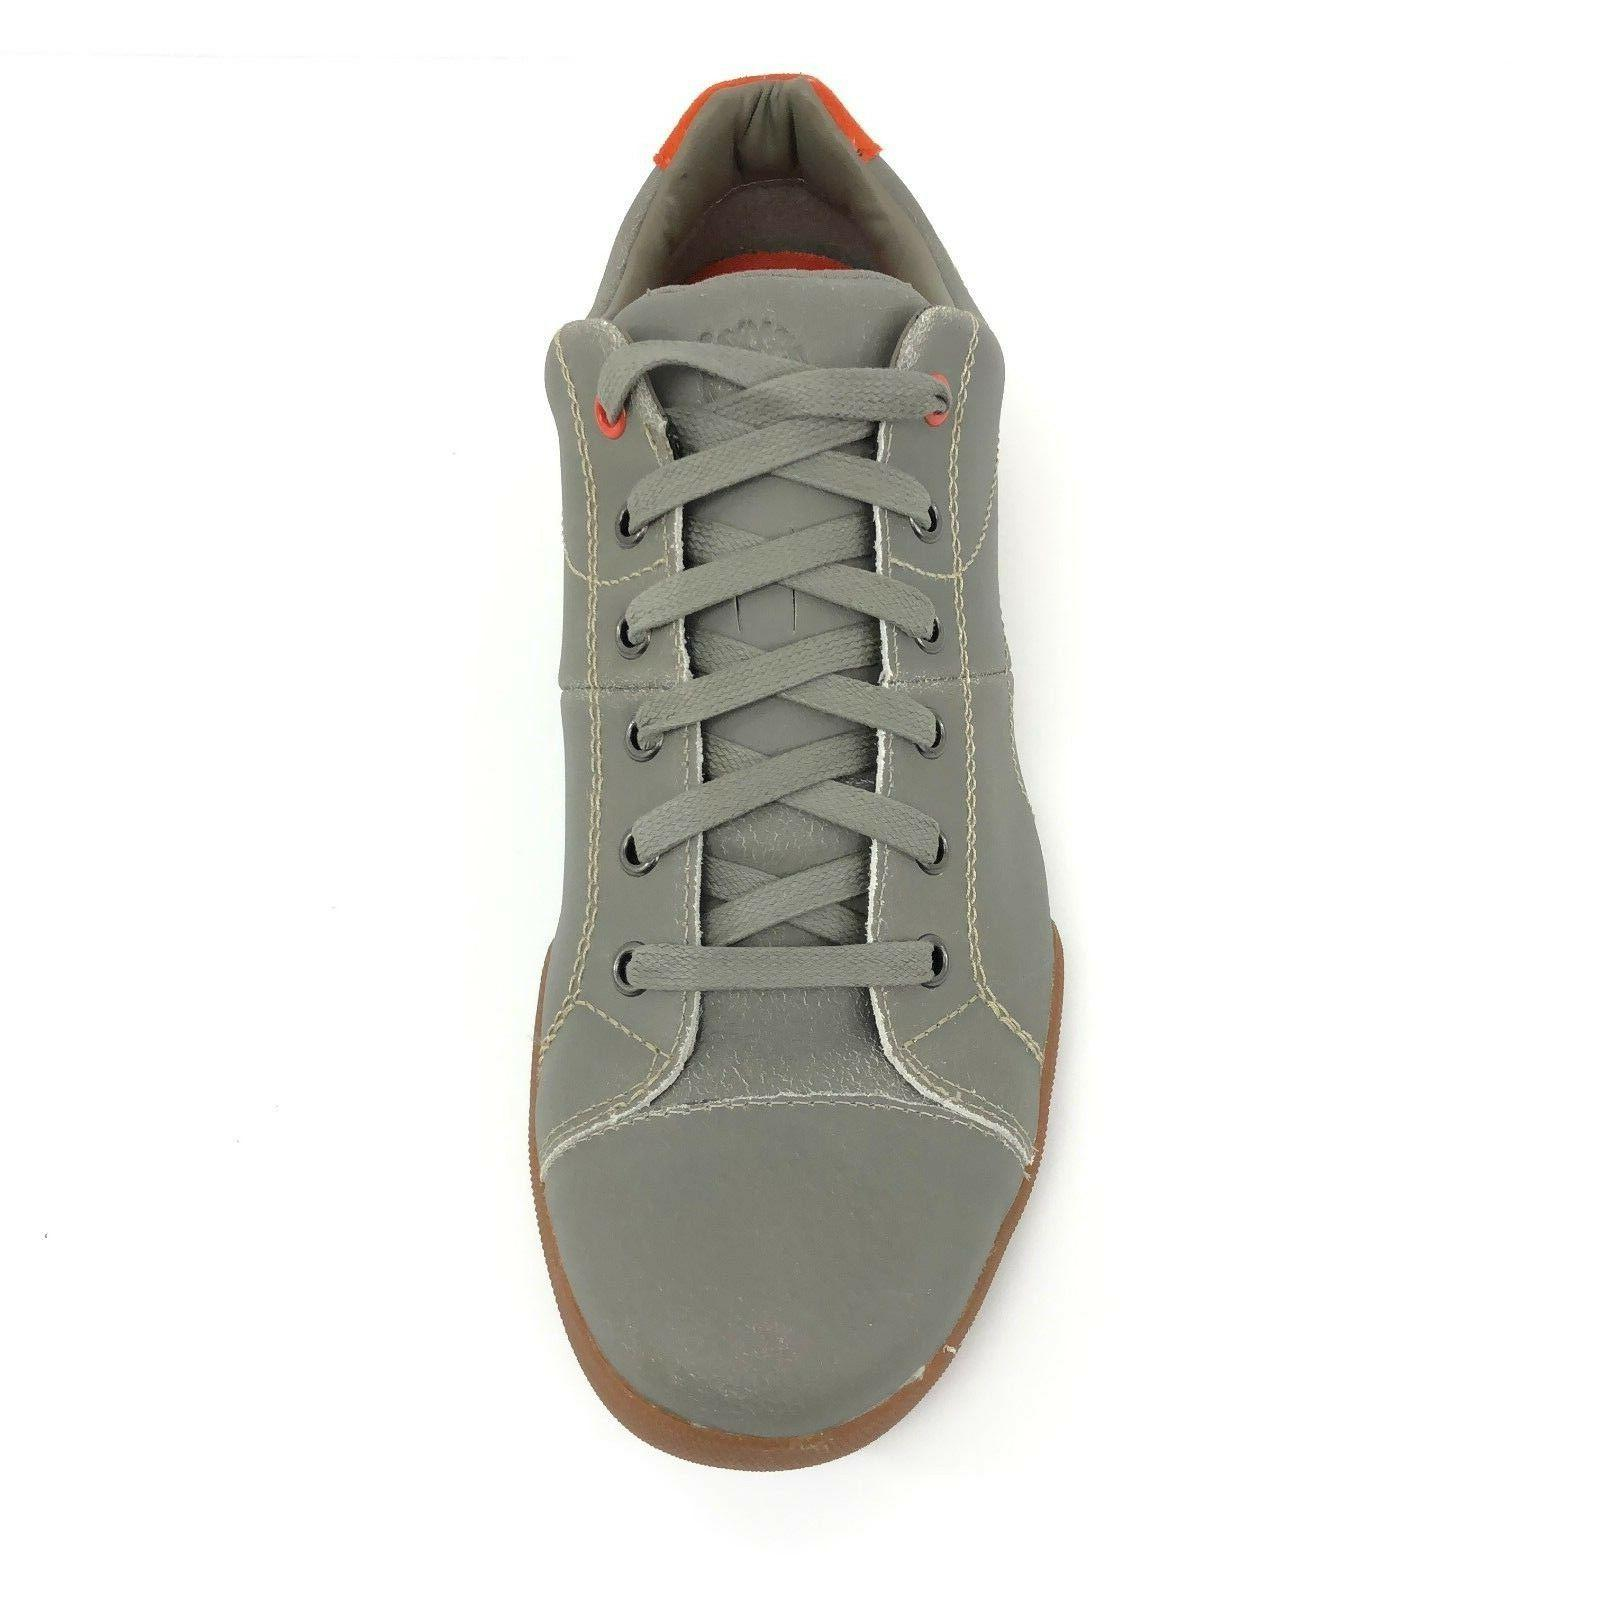 Timberland Cap Toe Oxford 5357A